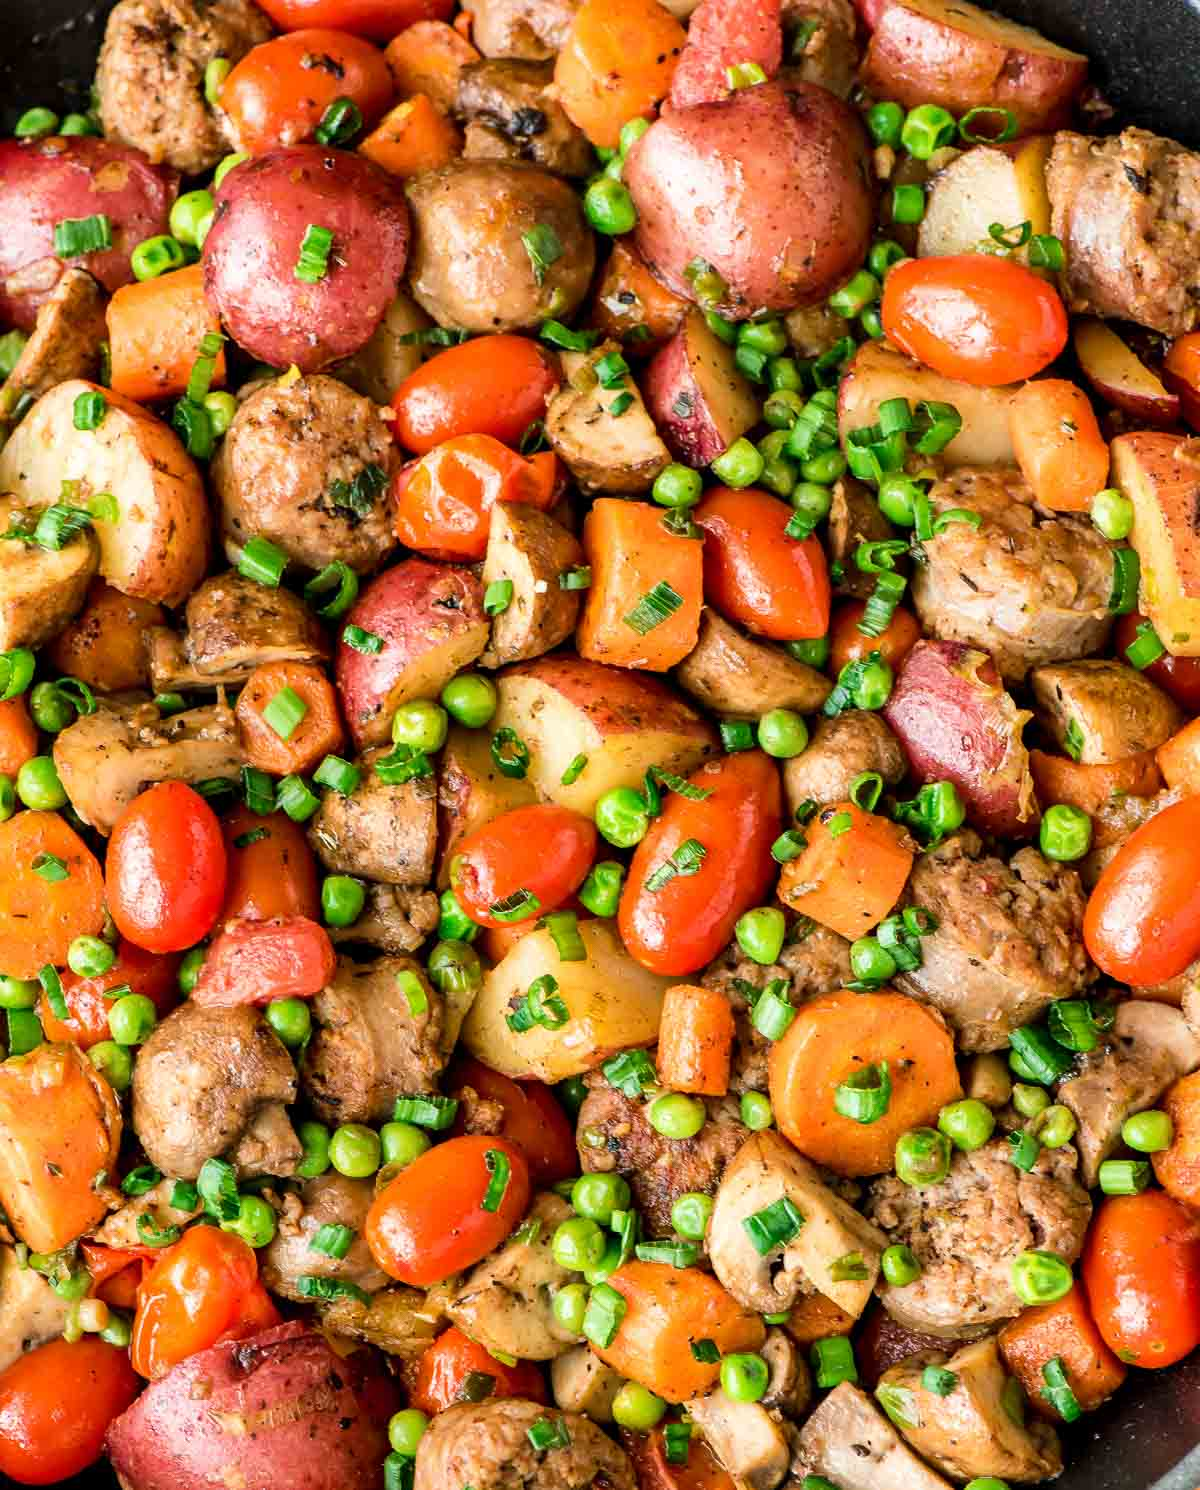 This Italian Sausage, Potato, and Veggie Skillet is a delicious and easy dinner recipe that takes just one skillet! Full of fresh veggies and smoky sausage, this dinner is both nutritious and filling! @wellplated